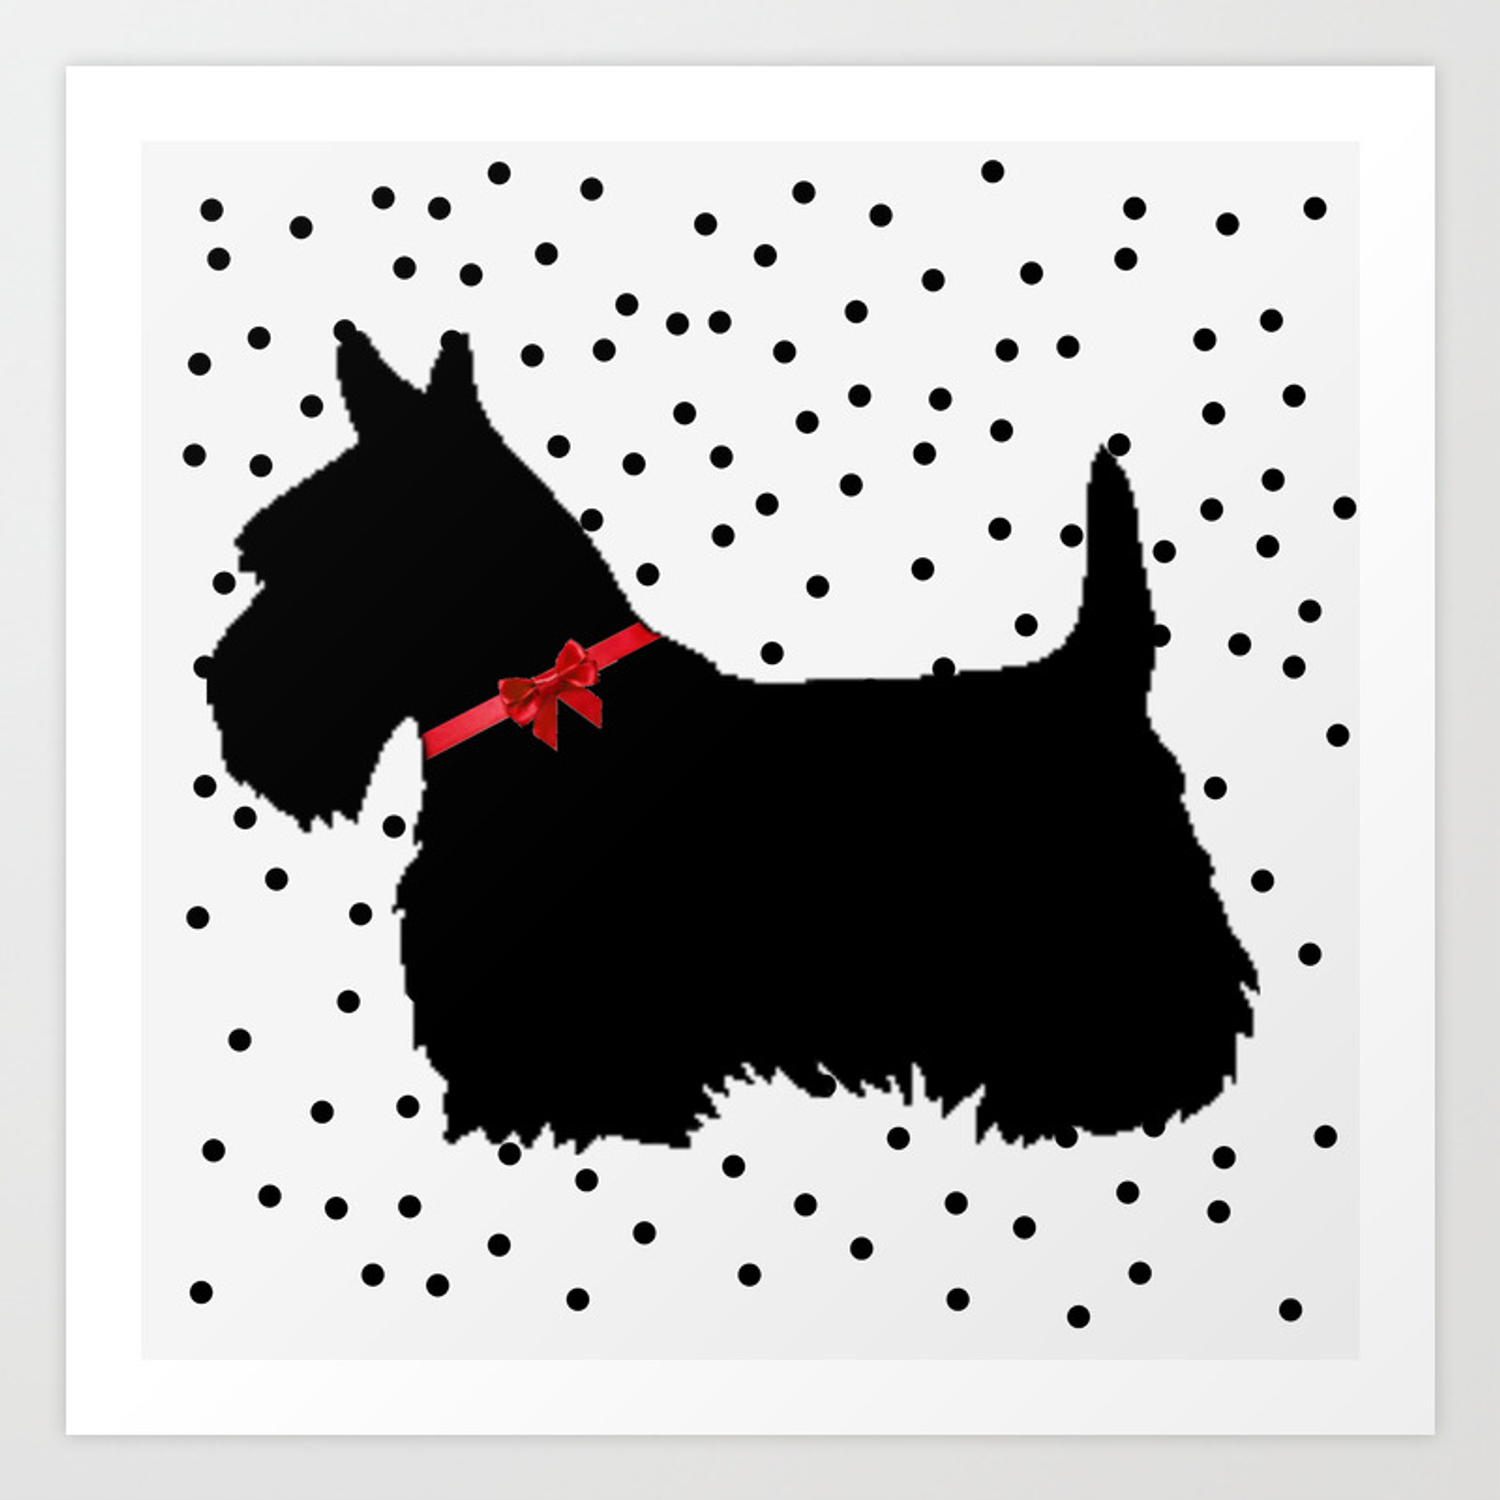 6+ Scottie Dog Templates, Crafts & Colouring Pages | Free ... | 1500x1500